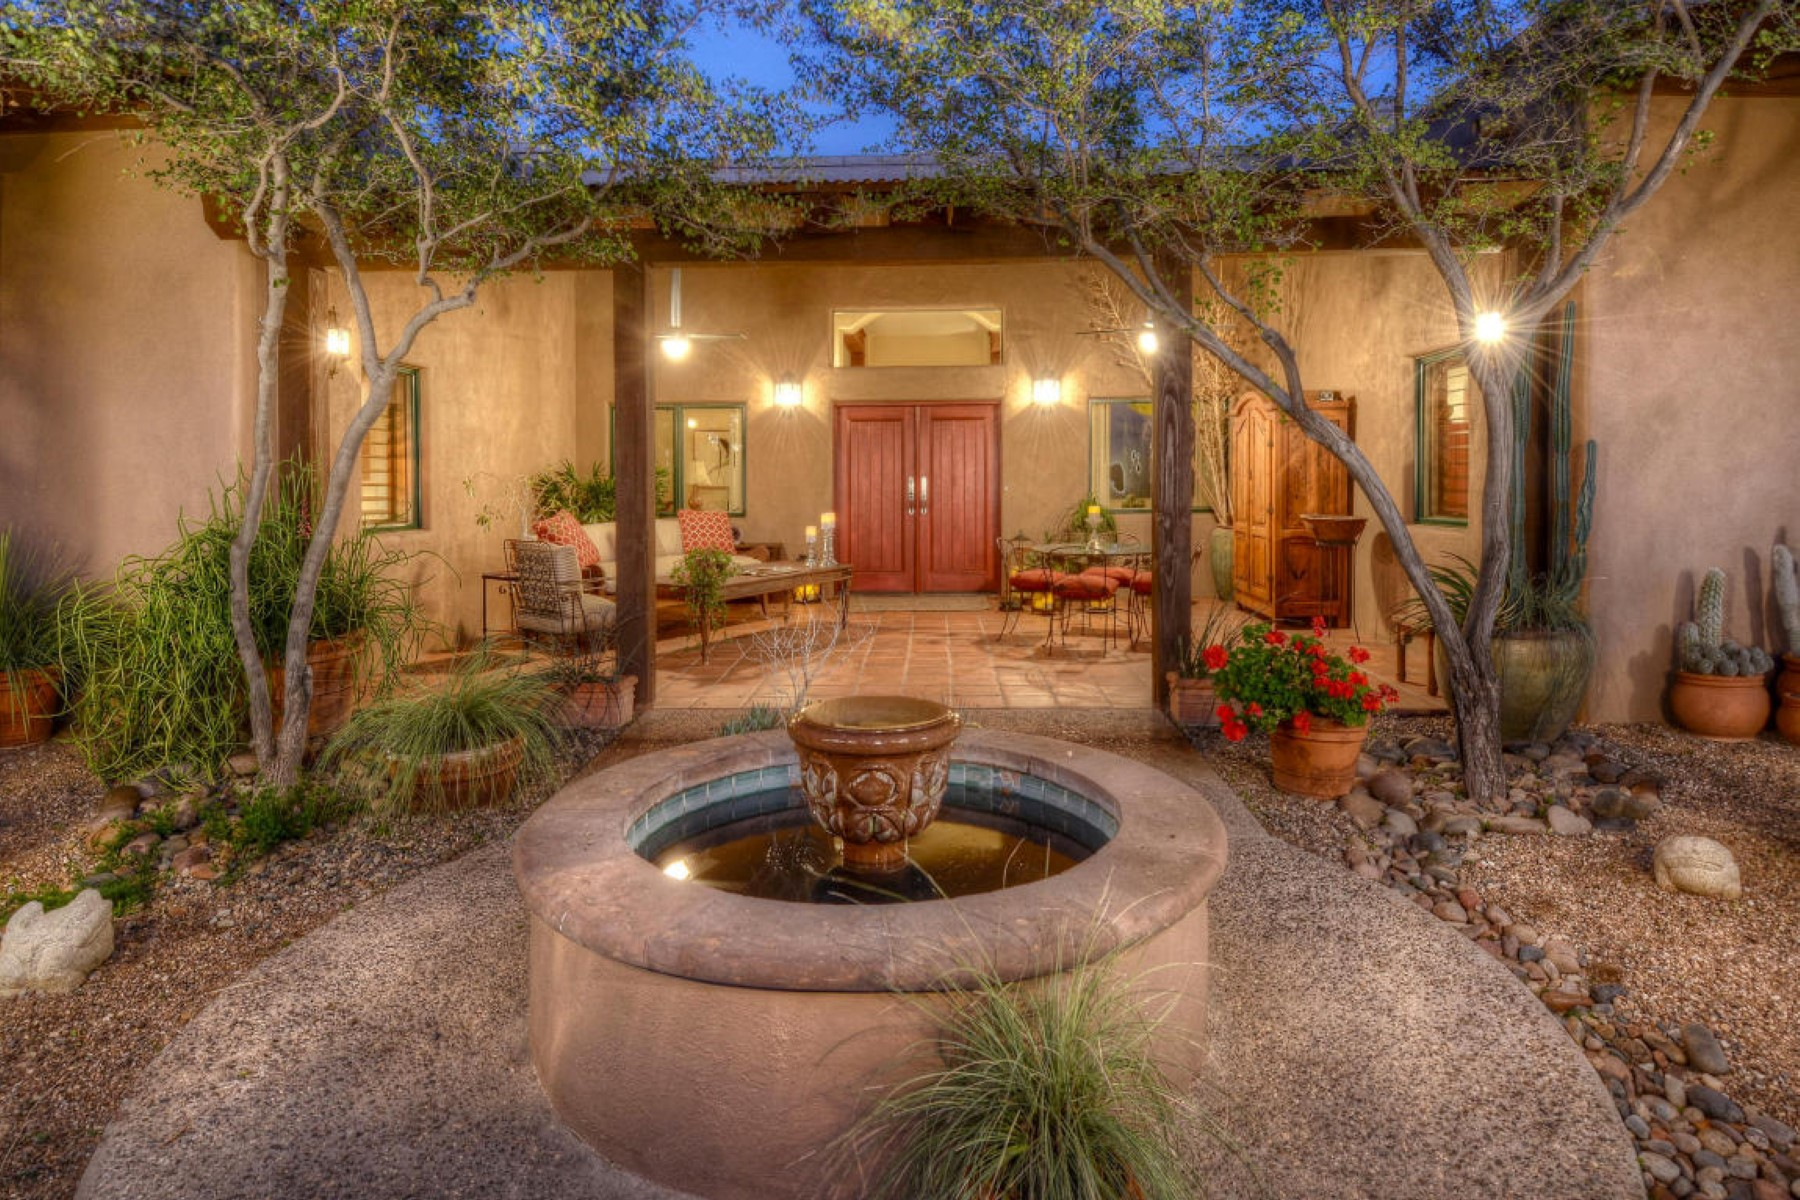 Property For Sale at Exquisite Hacienda Ranch secluded 10 acre retreat